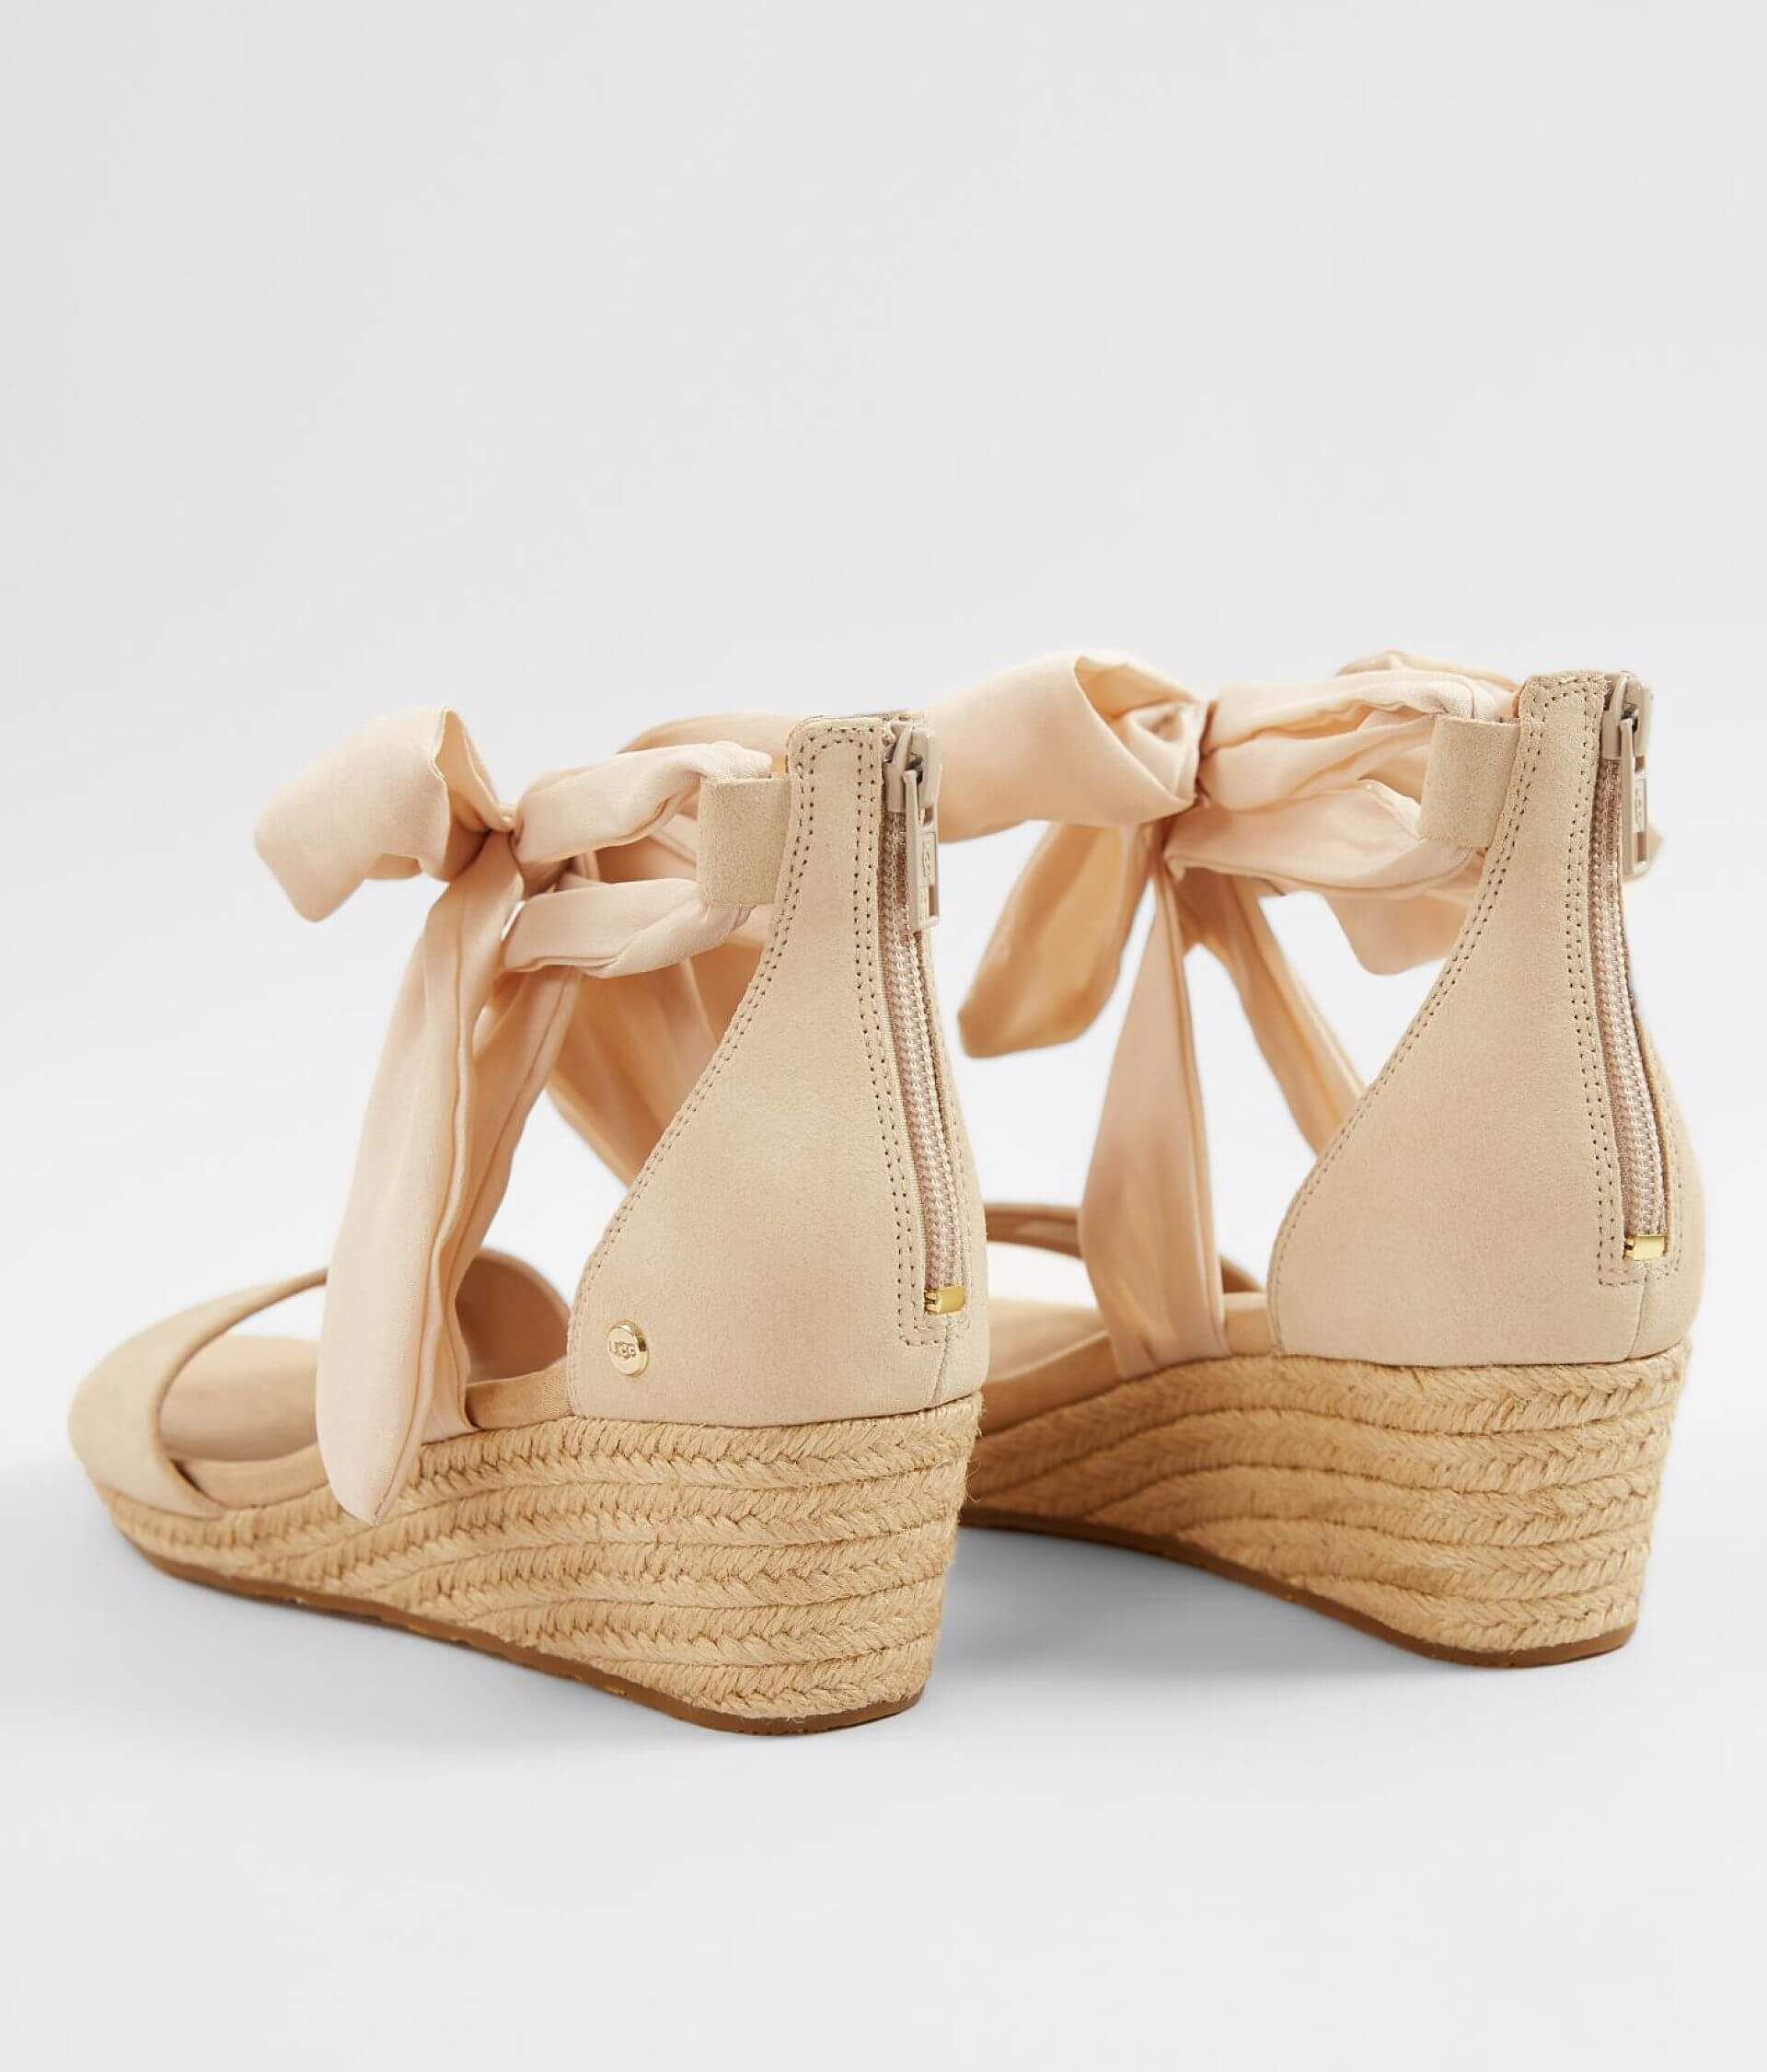 e452bb3ad26 UGG® Trina Leather Wedge Heeled Sandal - Women's Shoes in Nude | Buckle